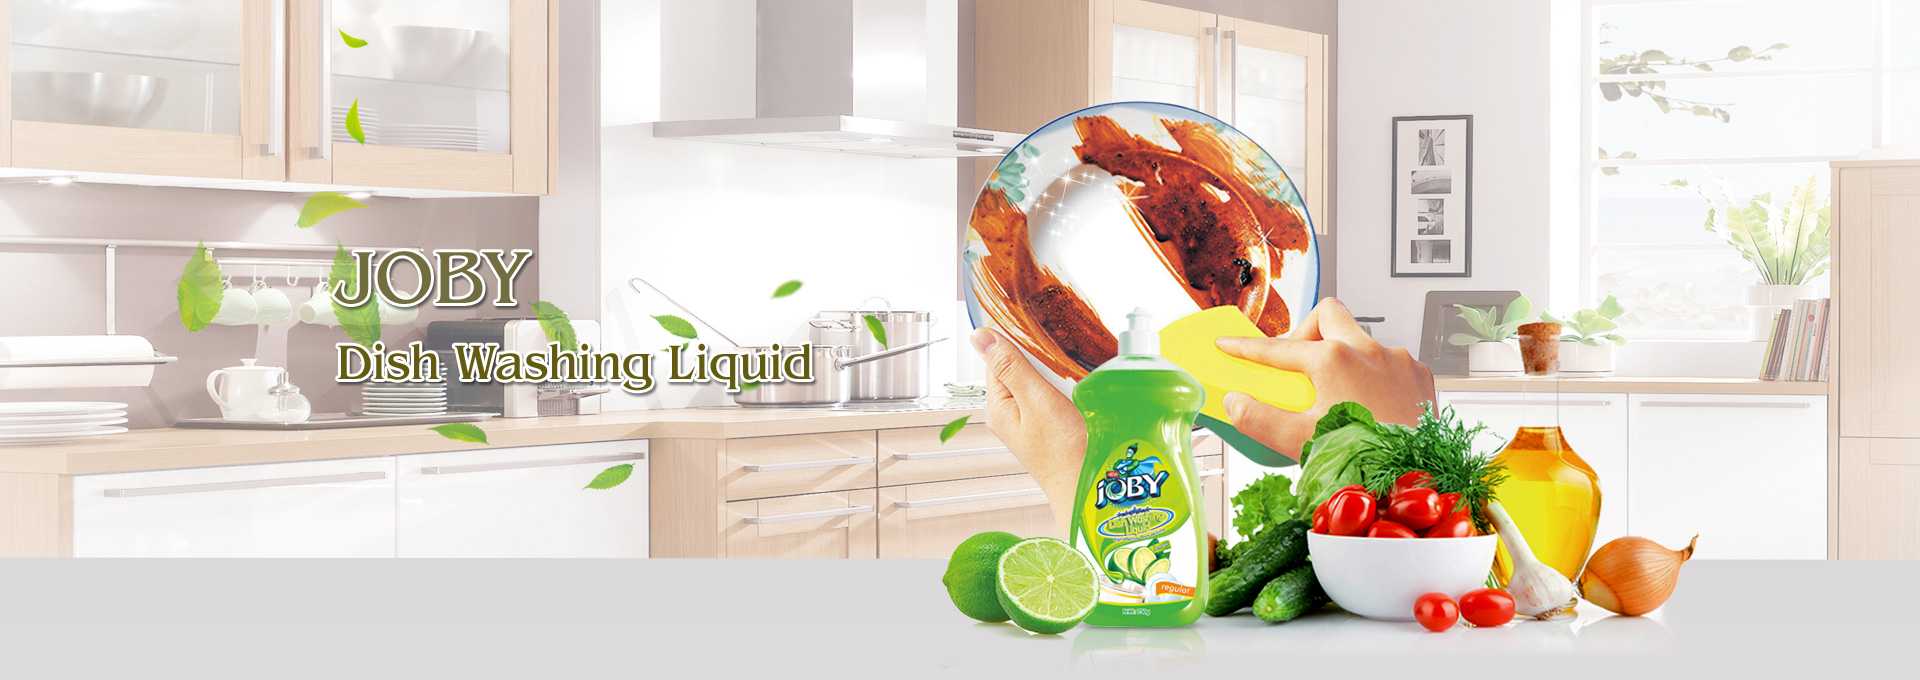 dish washing liquid lemon regular 750g JOBY